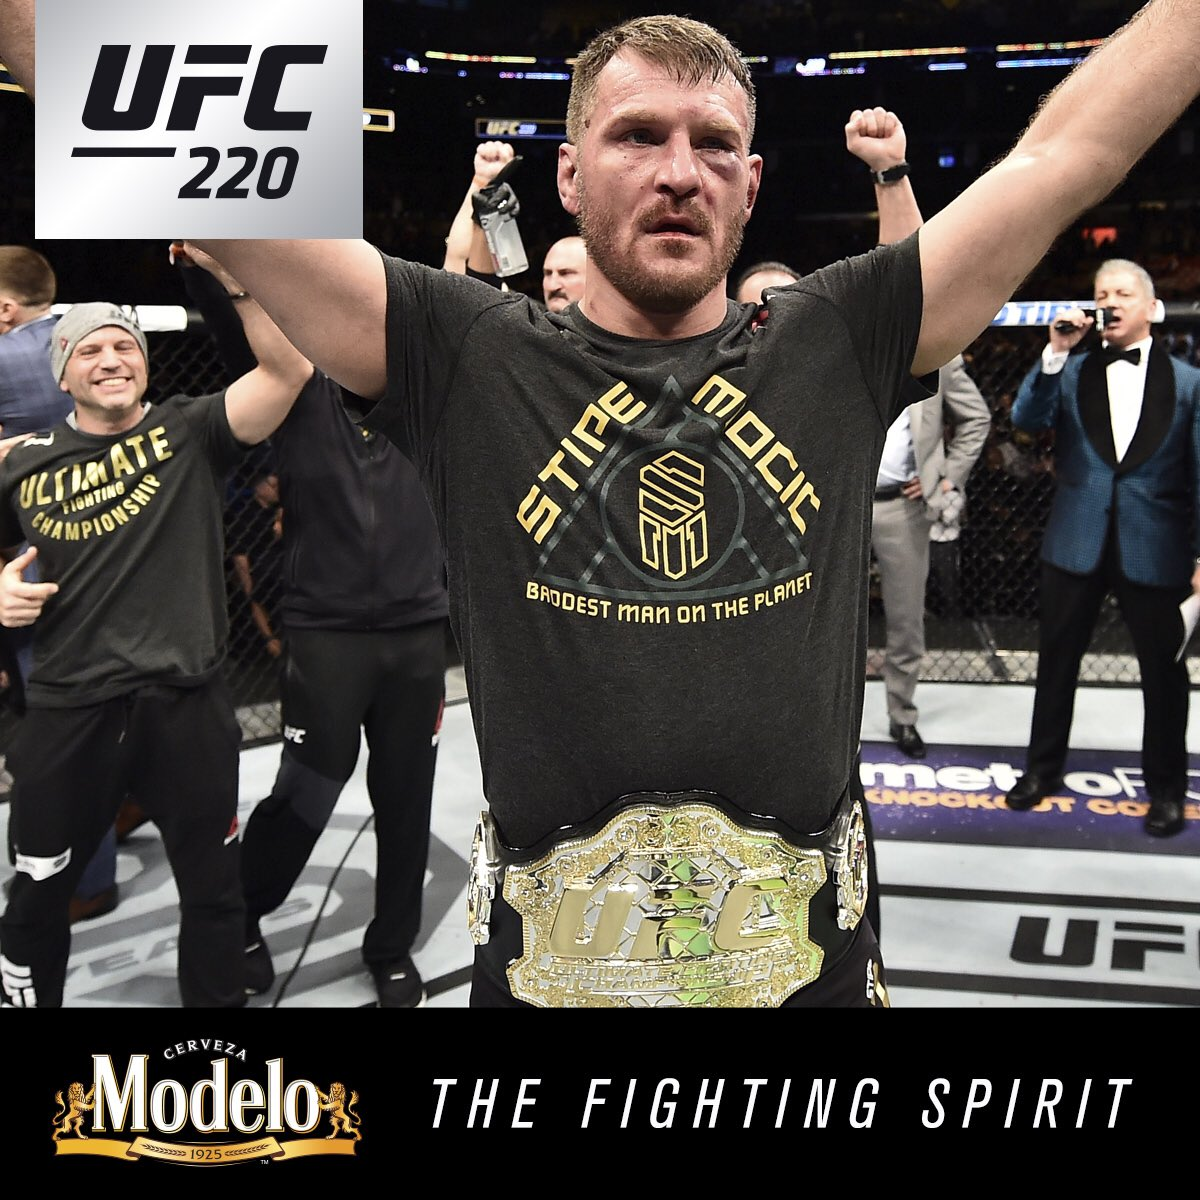 Records and Redemption! The #FightingSpirit was on full display at #UFC220 as @StipeMiocicUFC and @DC_MMA heard #AndStill in Boston! @ModeloUSA